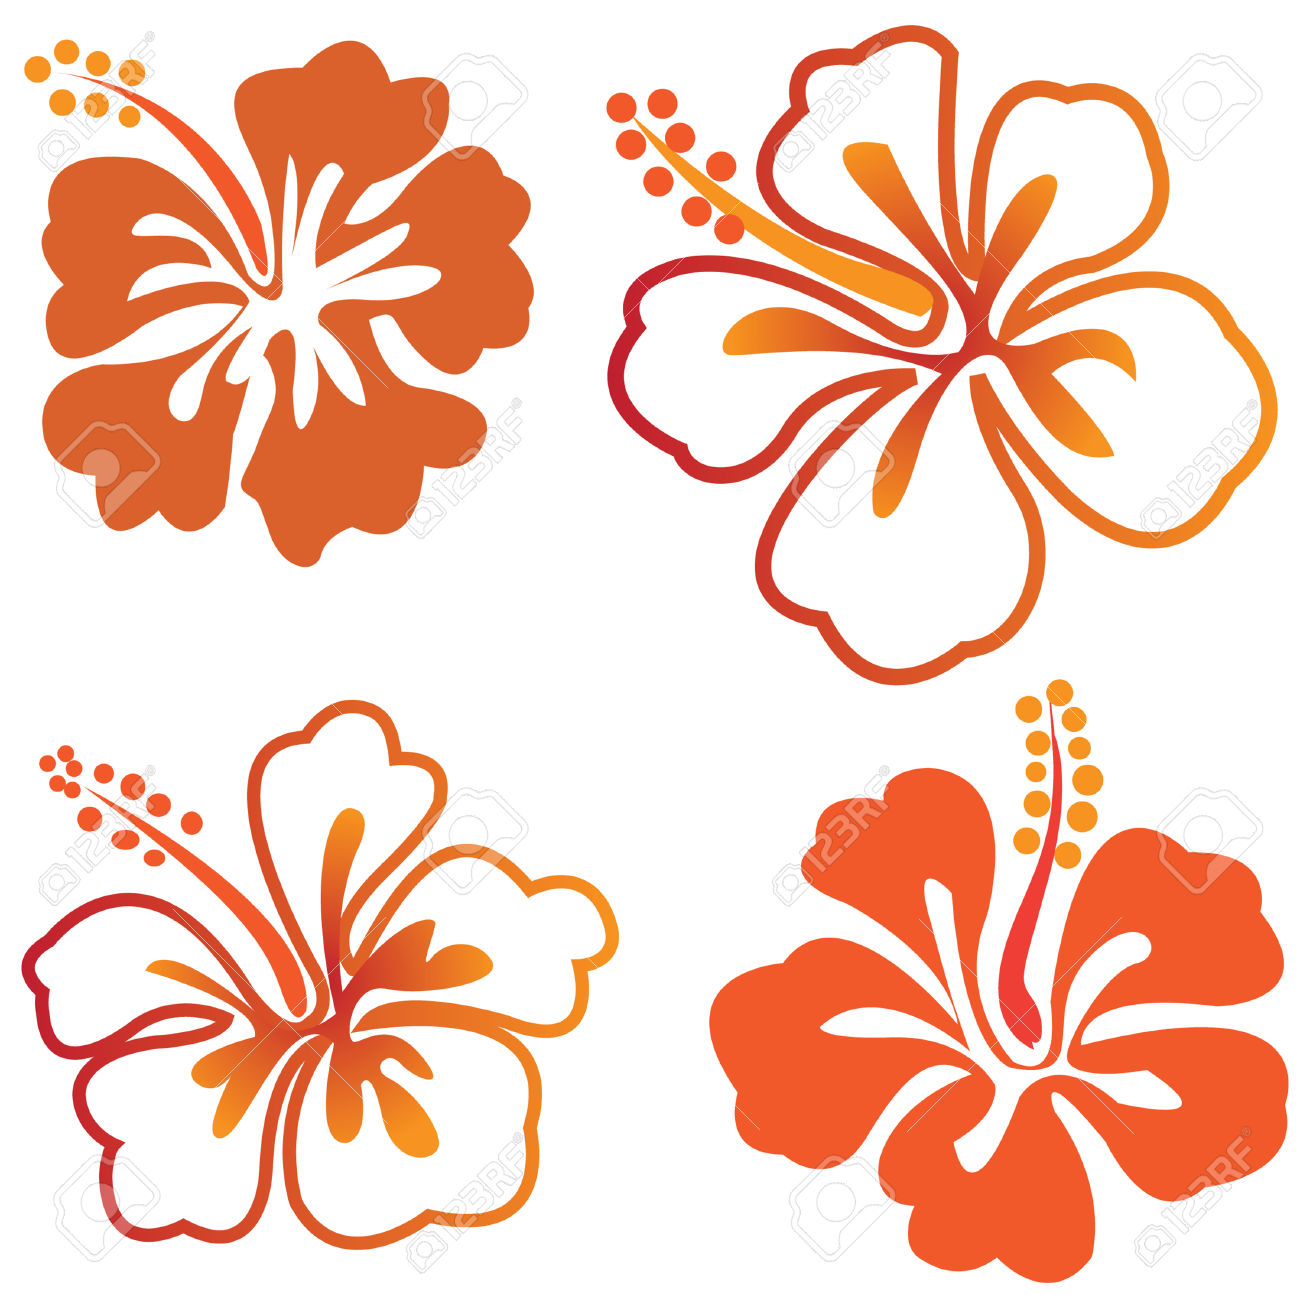 Hibiscus Chinese Rose Flowers Isolated Royalty Free Cliparts.